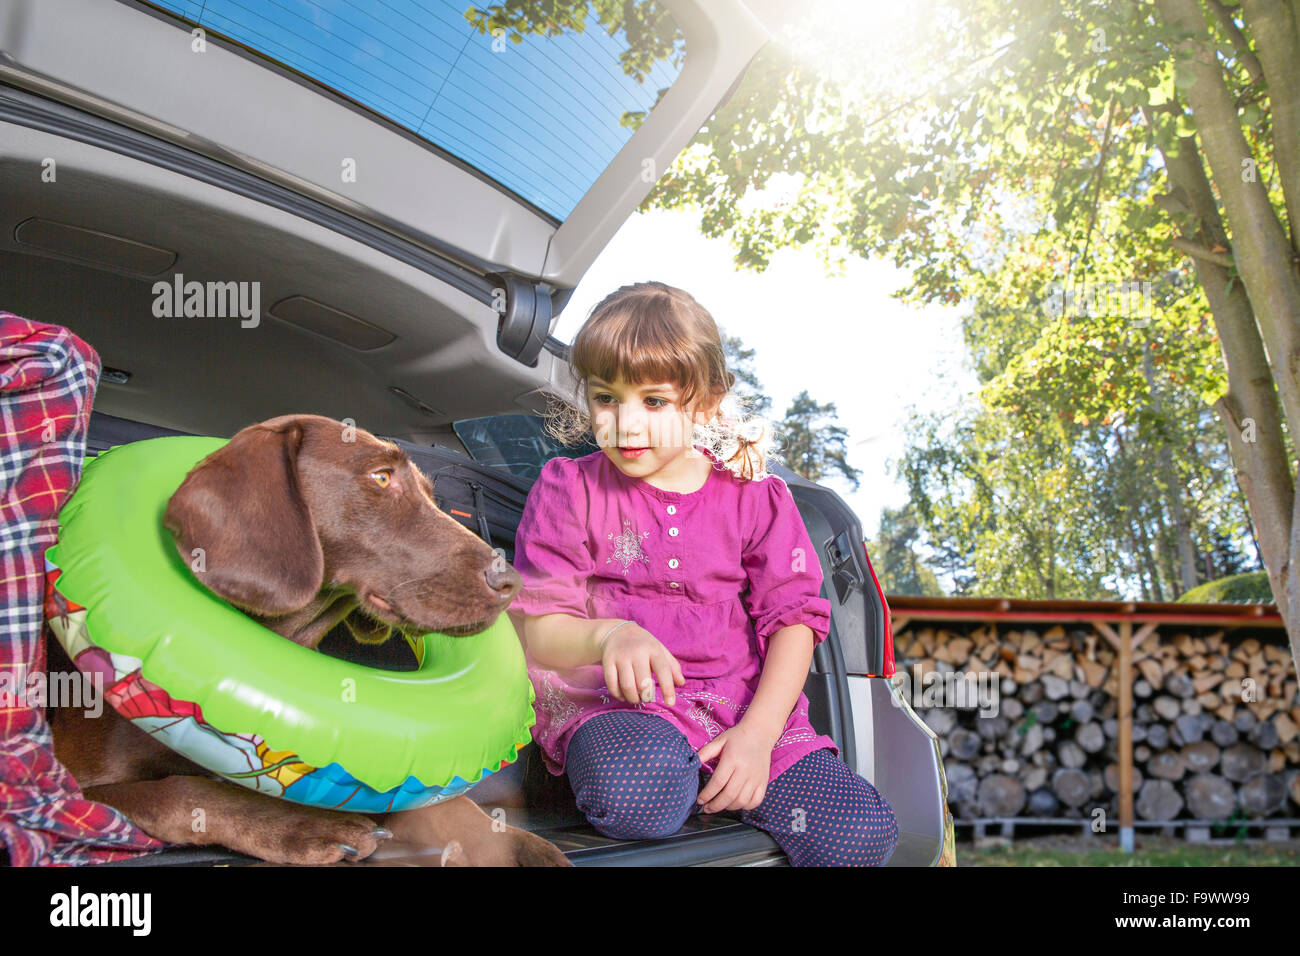 Girl in car boot with dog wearing floating tyre - Stock Image